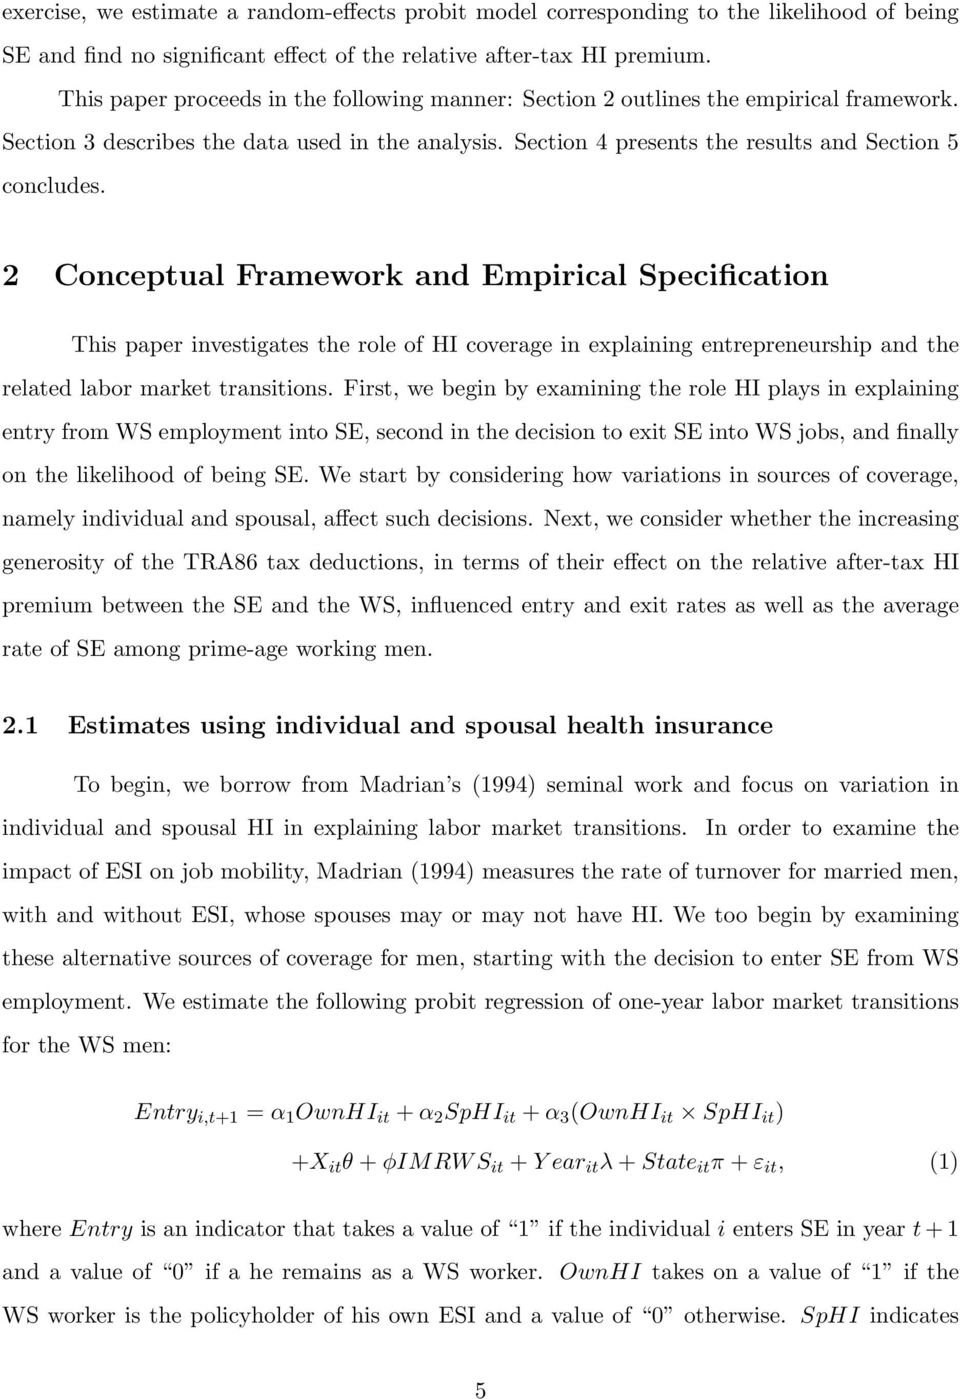 2 Conceptual Framework and Empirical Specification This paper investigates the role of HI coverage in explaining entrepreneurship and the related labor market transitions.